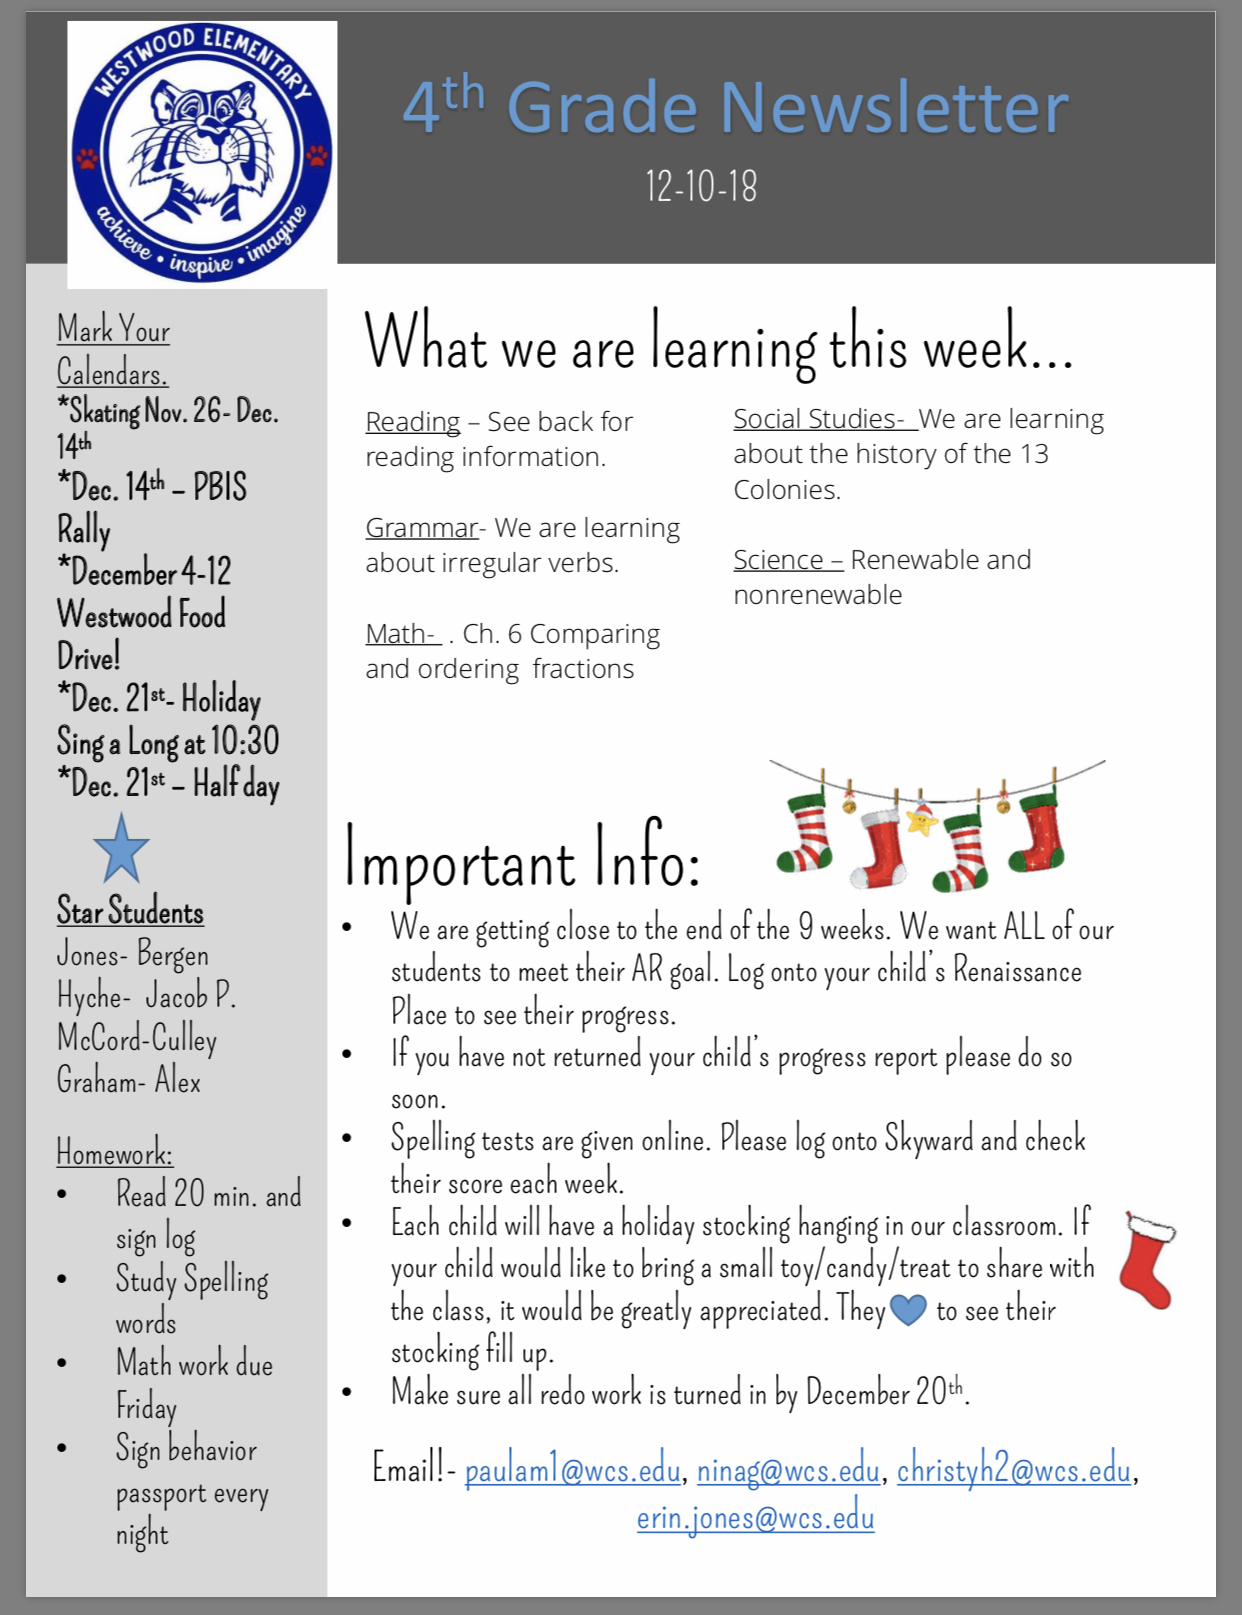 4th Grade Newsletter paper copy in office